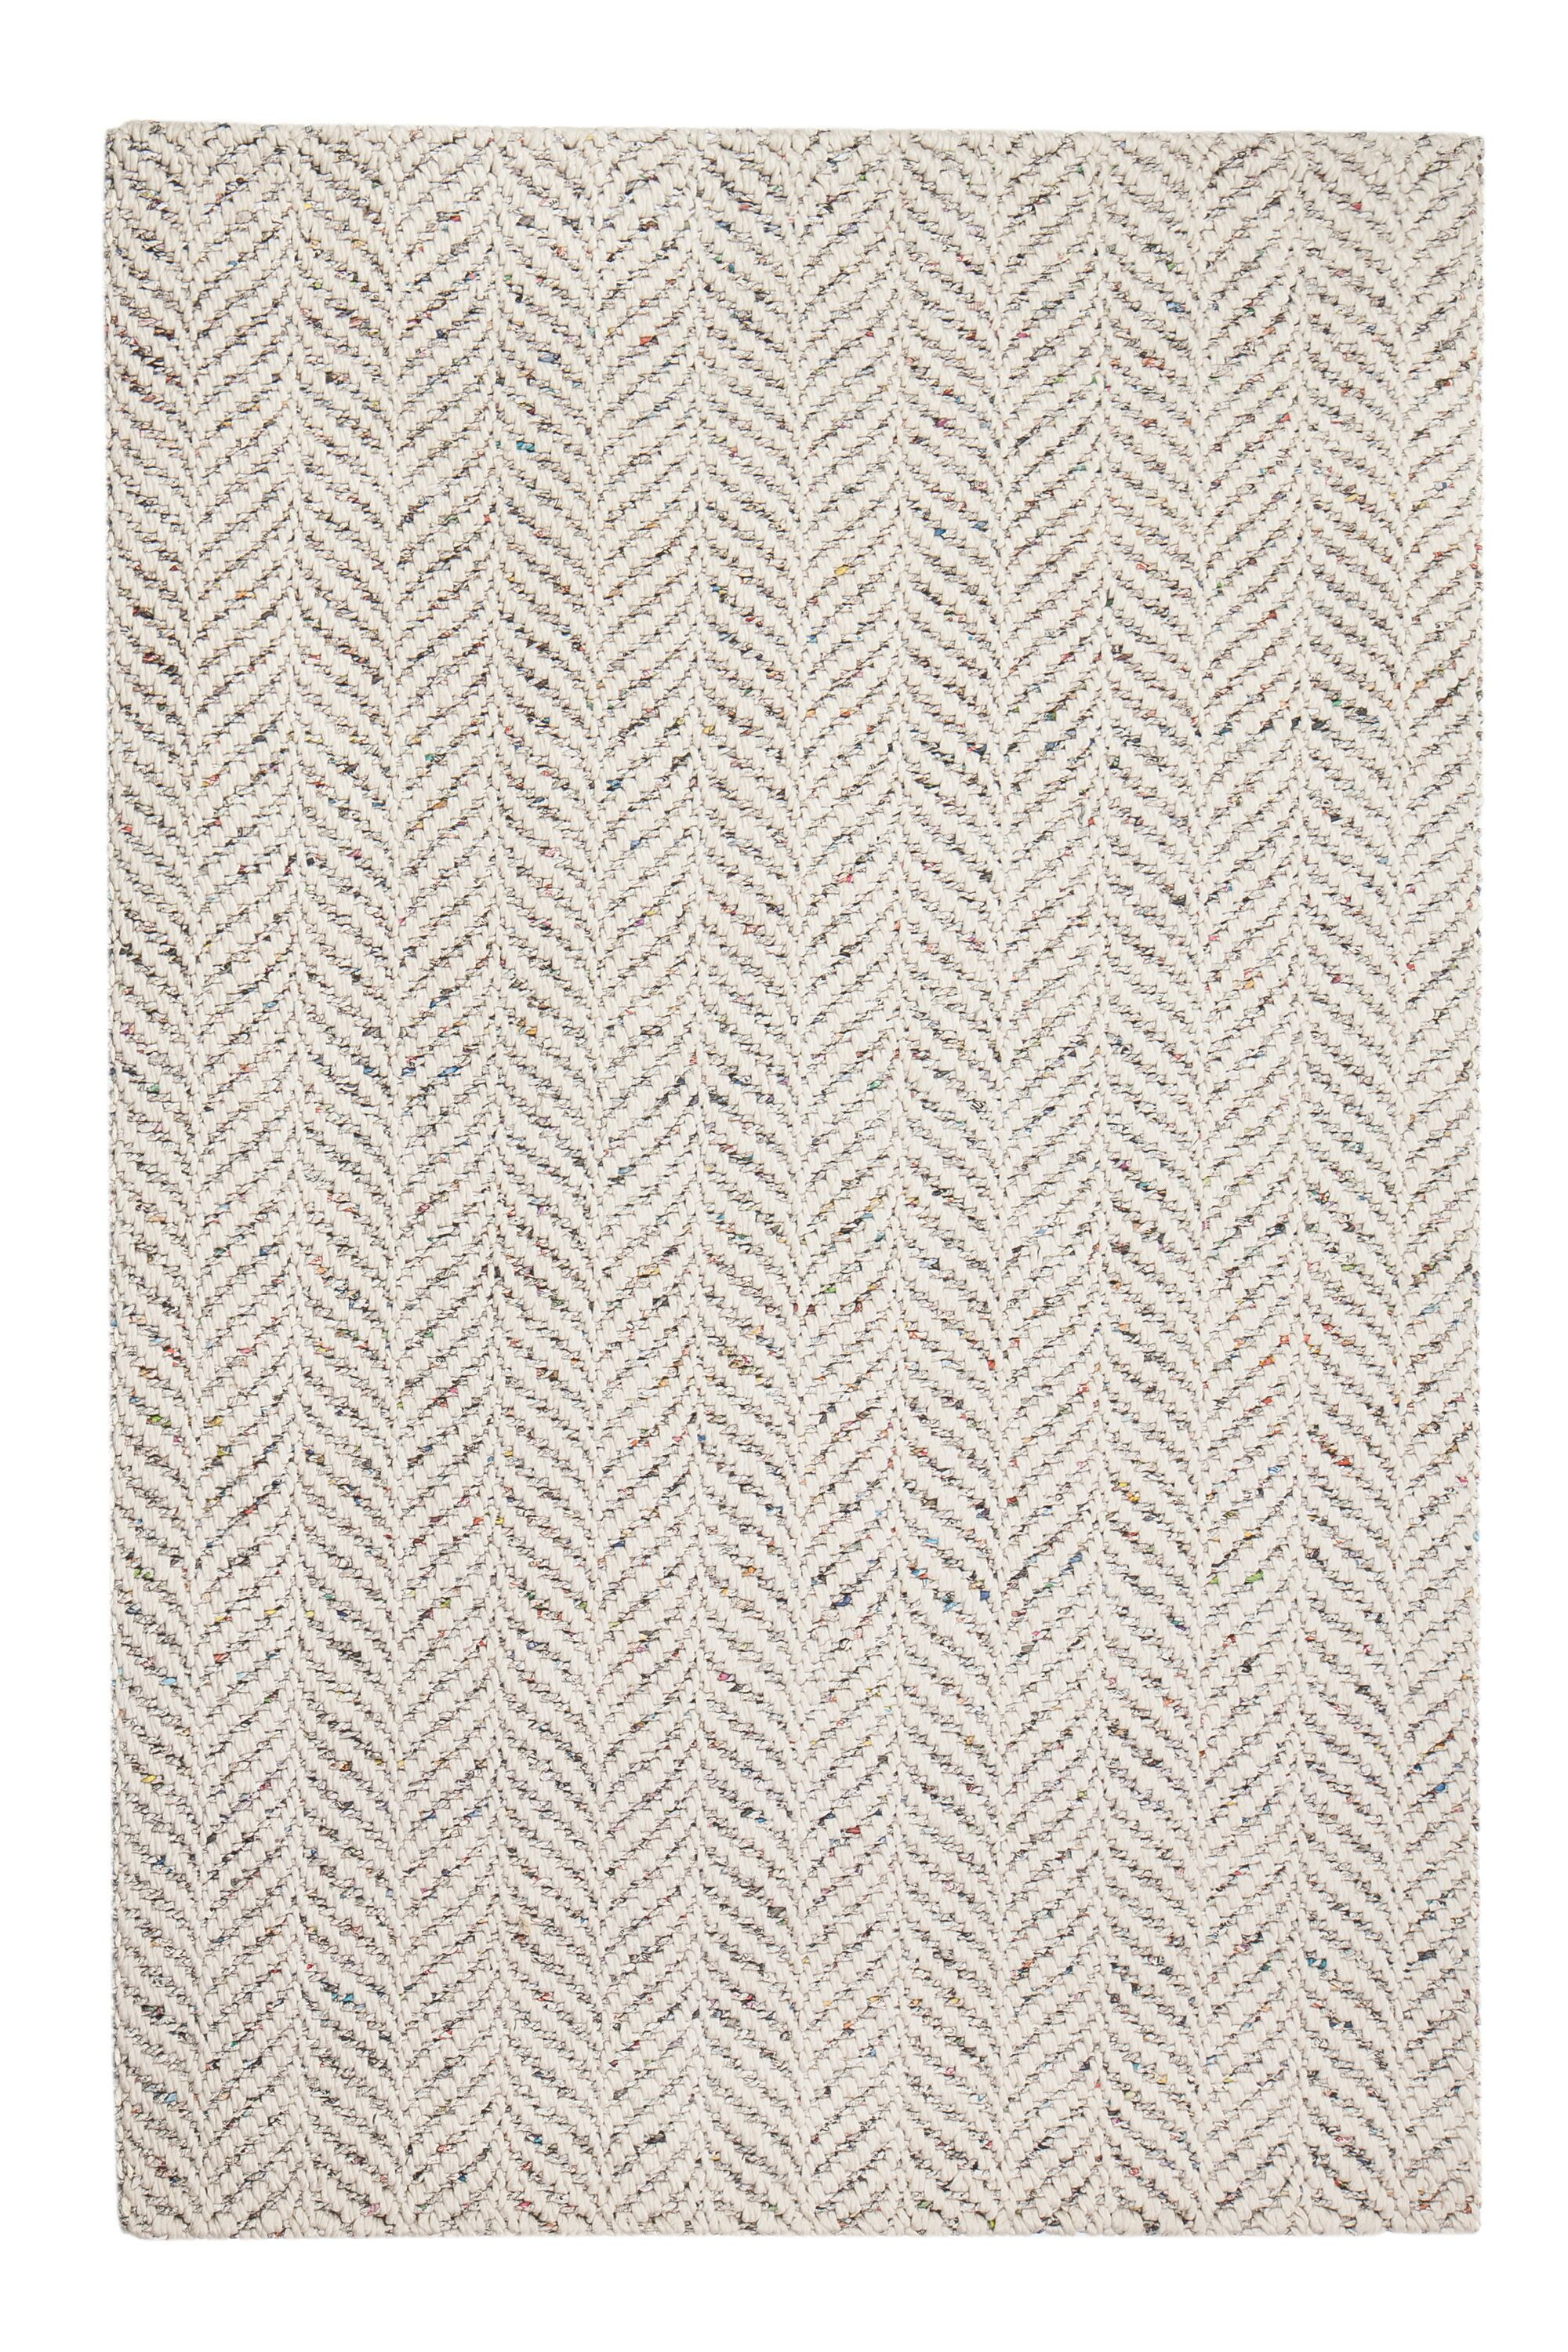 Sigrid Hand-Woven Ivory Area Rug Rug Size: 8' x 10'